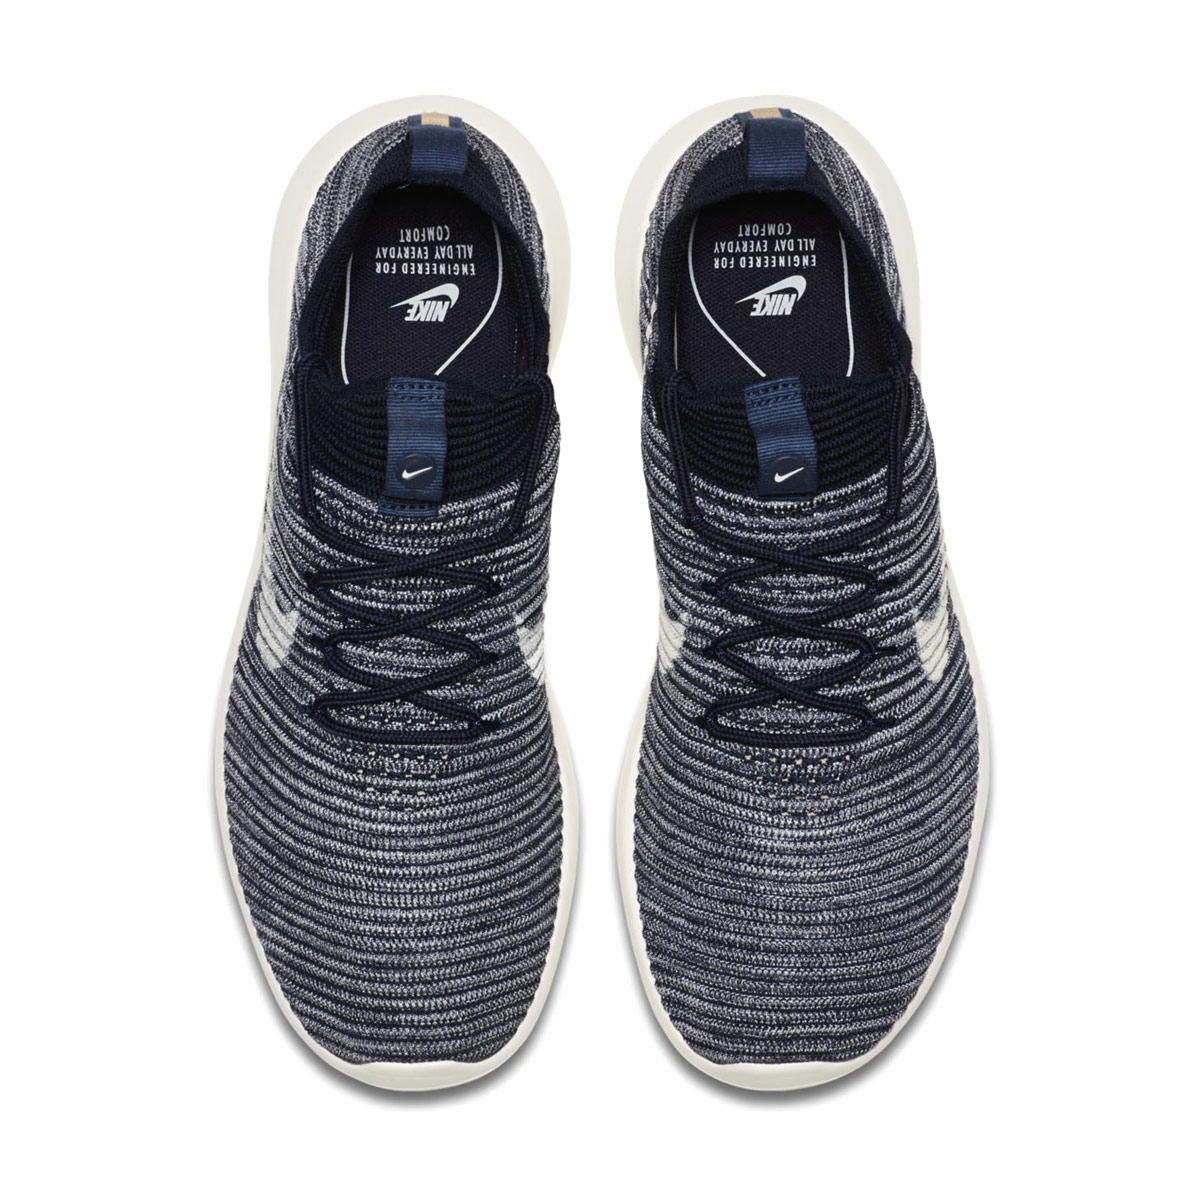 new product 5792a a62c7 NIKE W ROSHE TWO FLYKNIT V2 (ナイキウィメンズローシ 2 fly knit V2) COLLEGE  NAVY/SAIL-MTLC COPPERCOIN 17FA-I